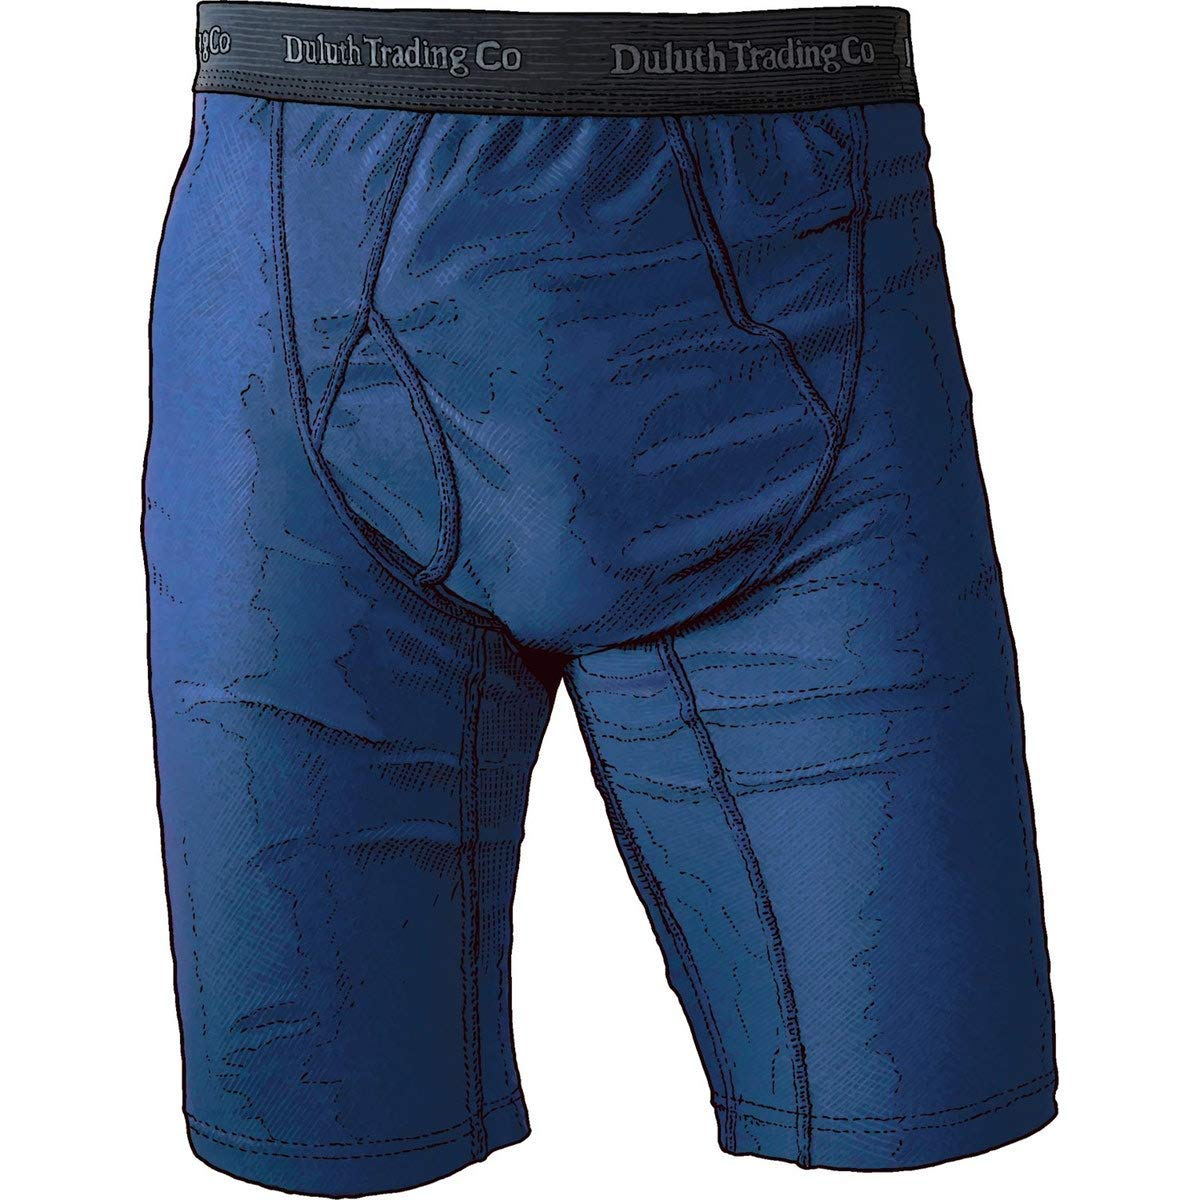 Duluth Trading Company Men's Extra Long Buck Naked Boxer Briefs (Many  Colors) (M, Blue)